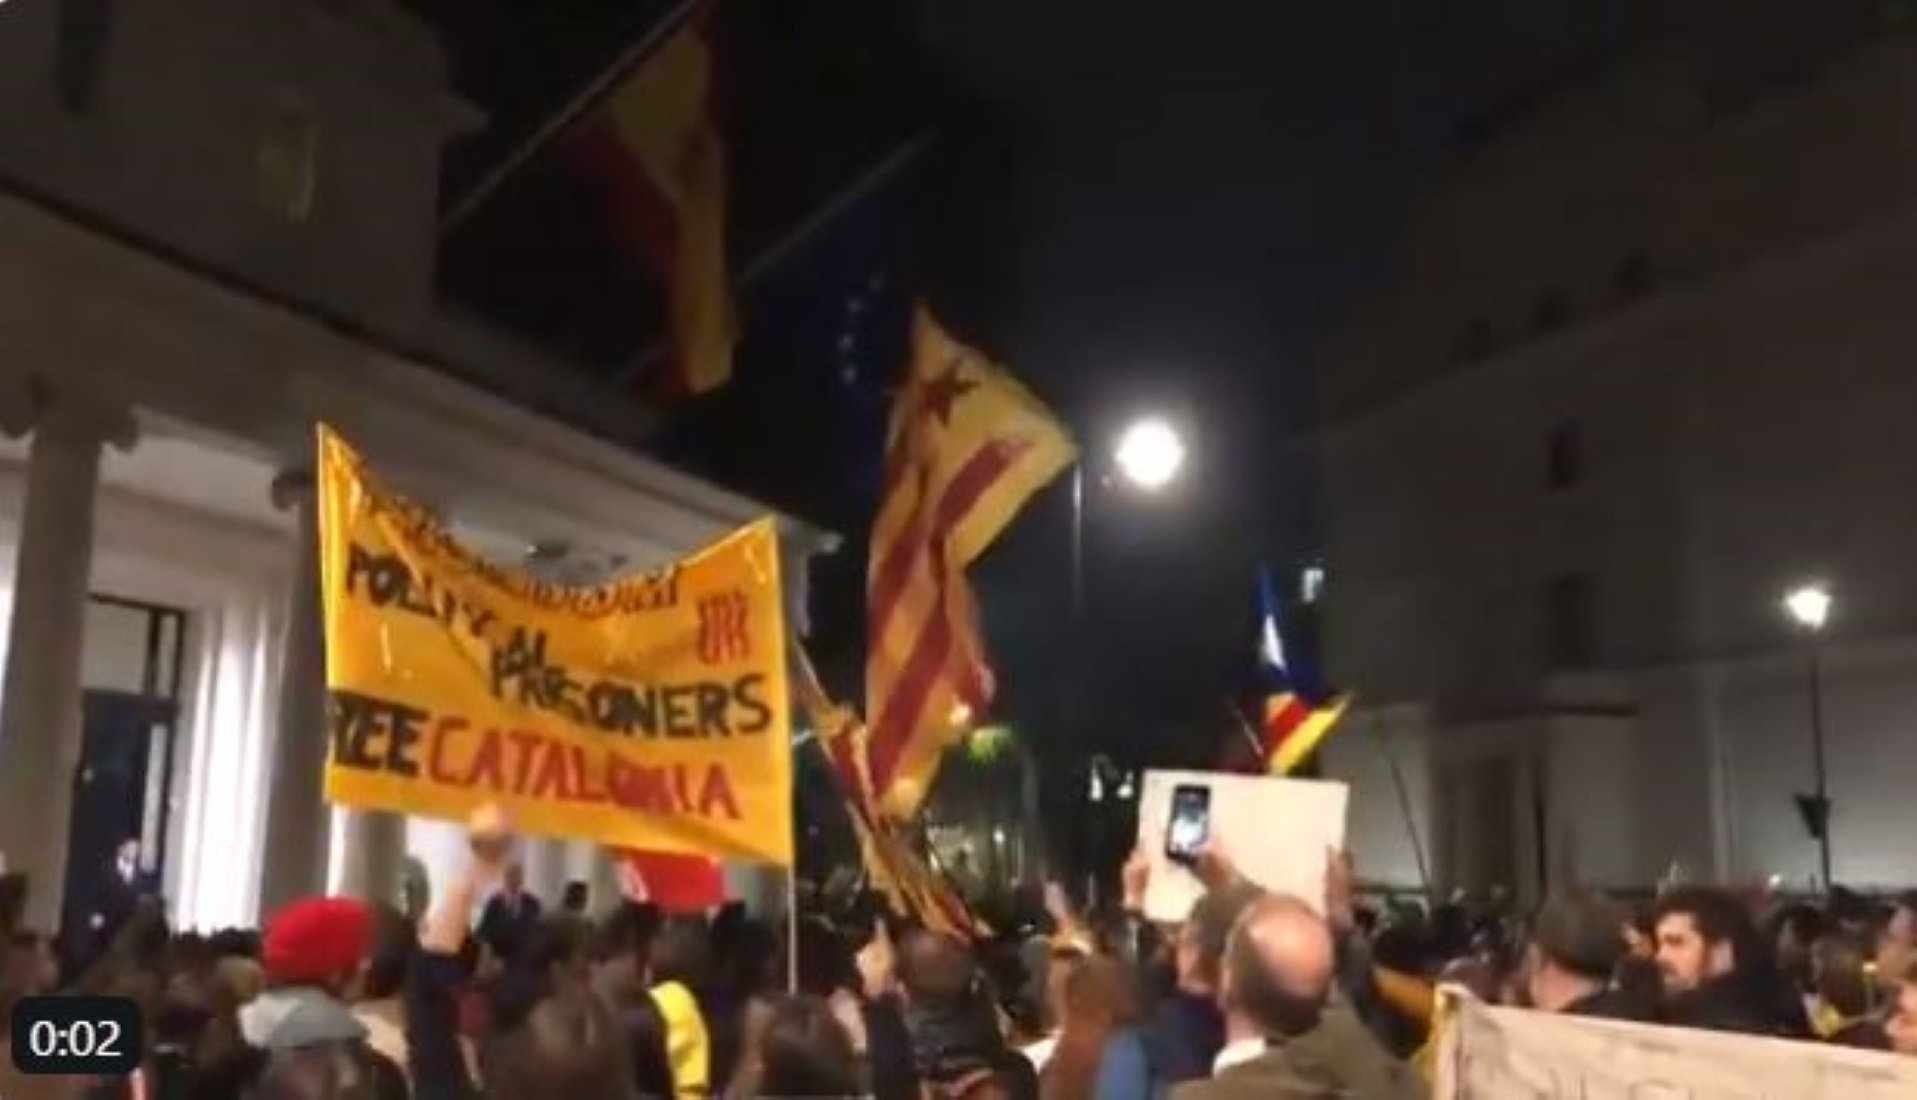 Large protest in London over Catalan trial verdicts - In English